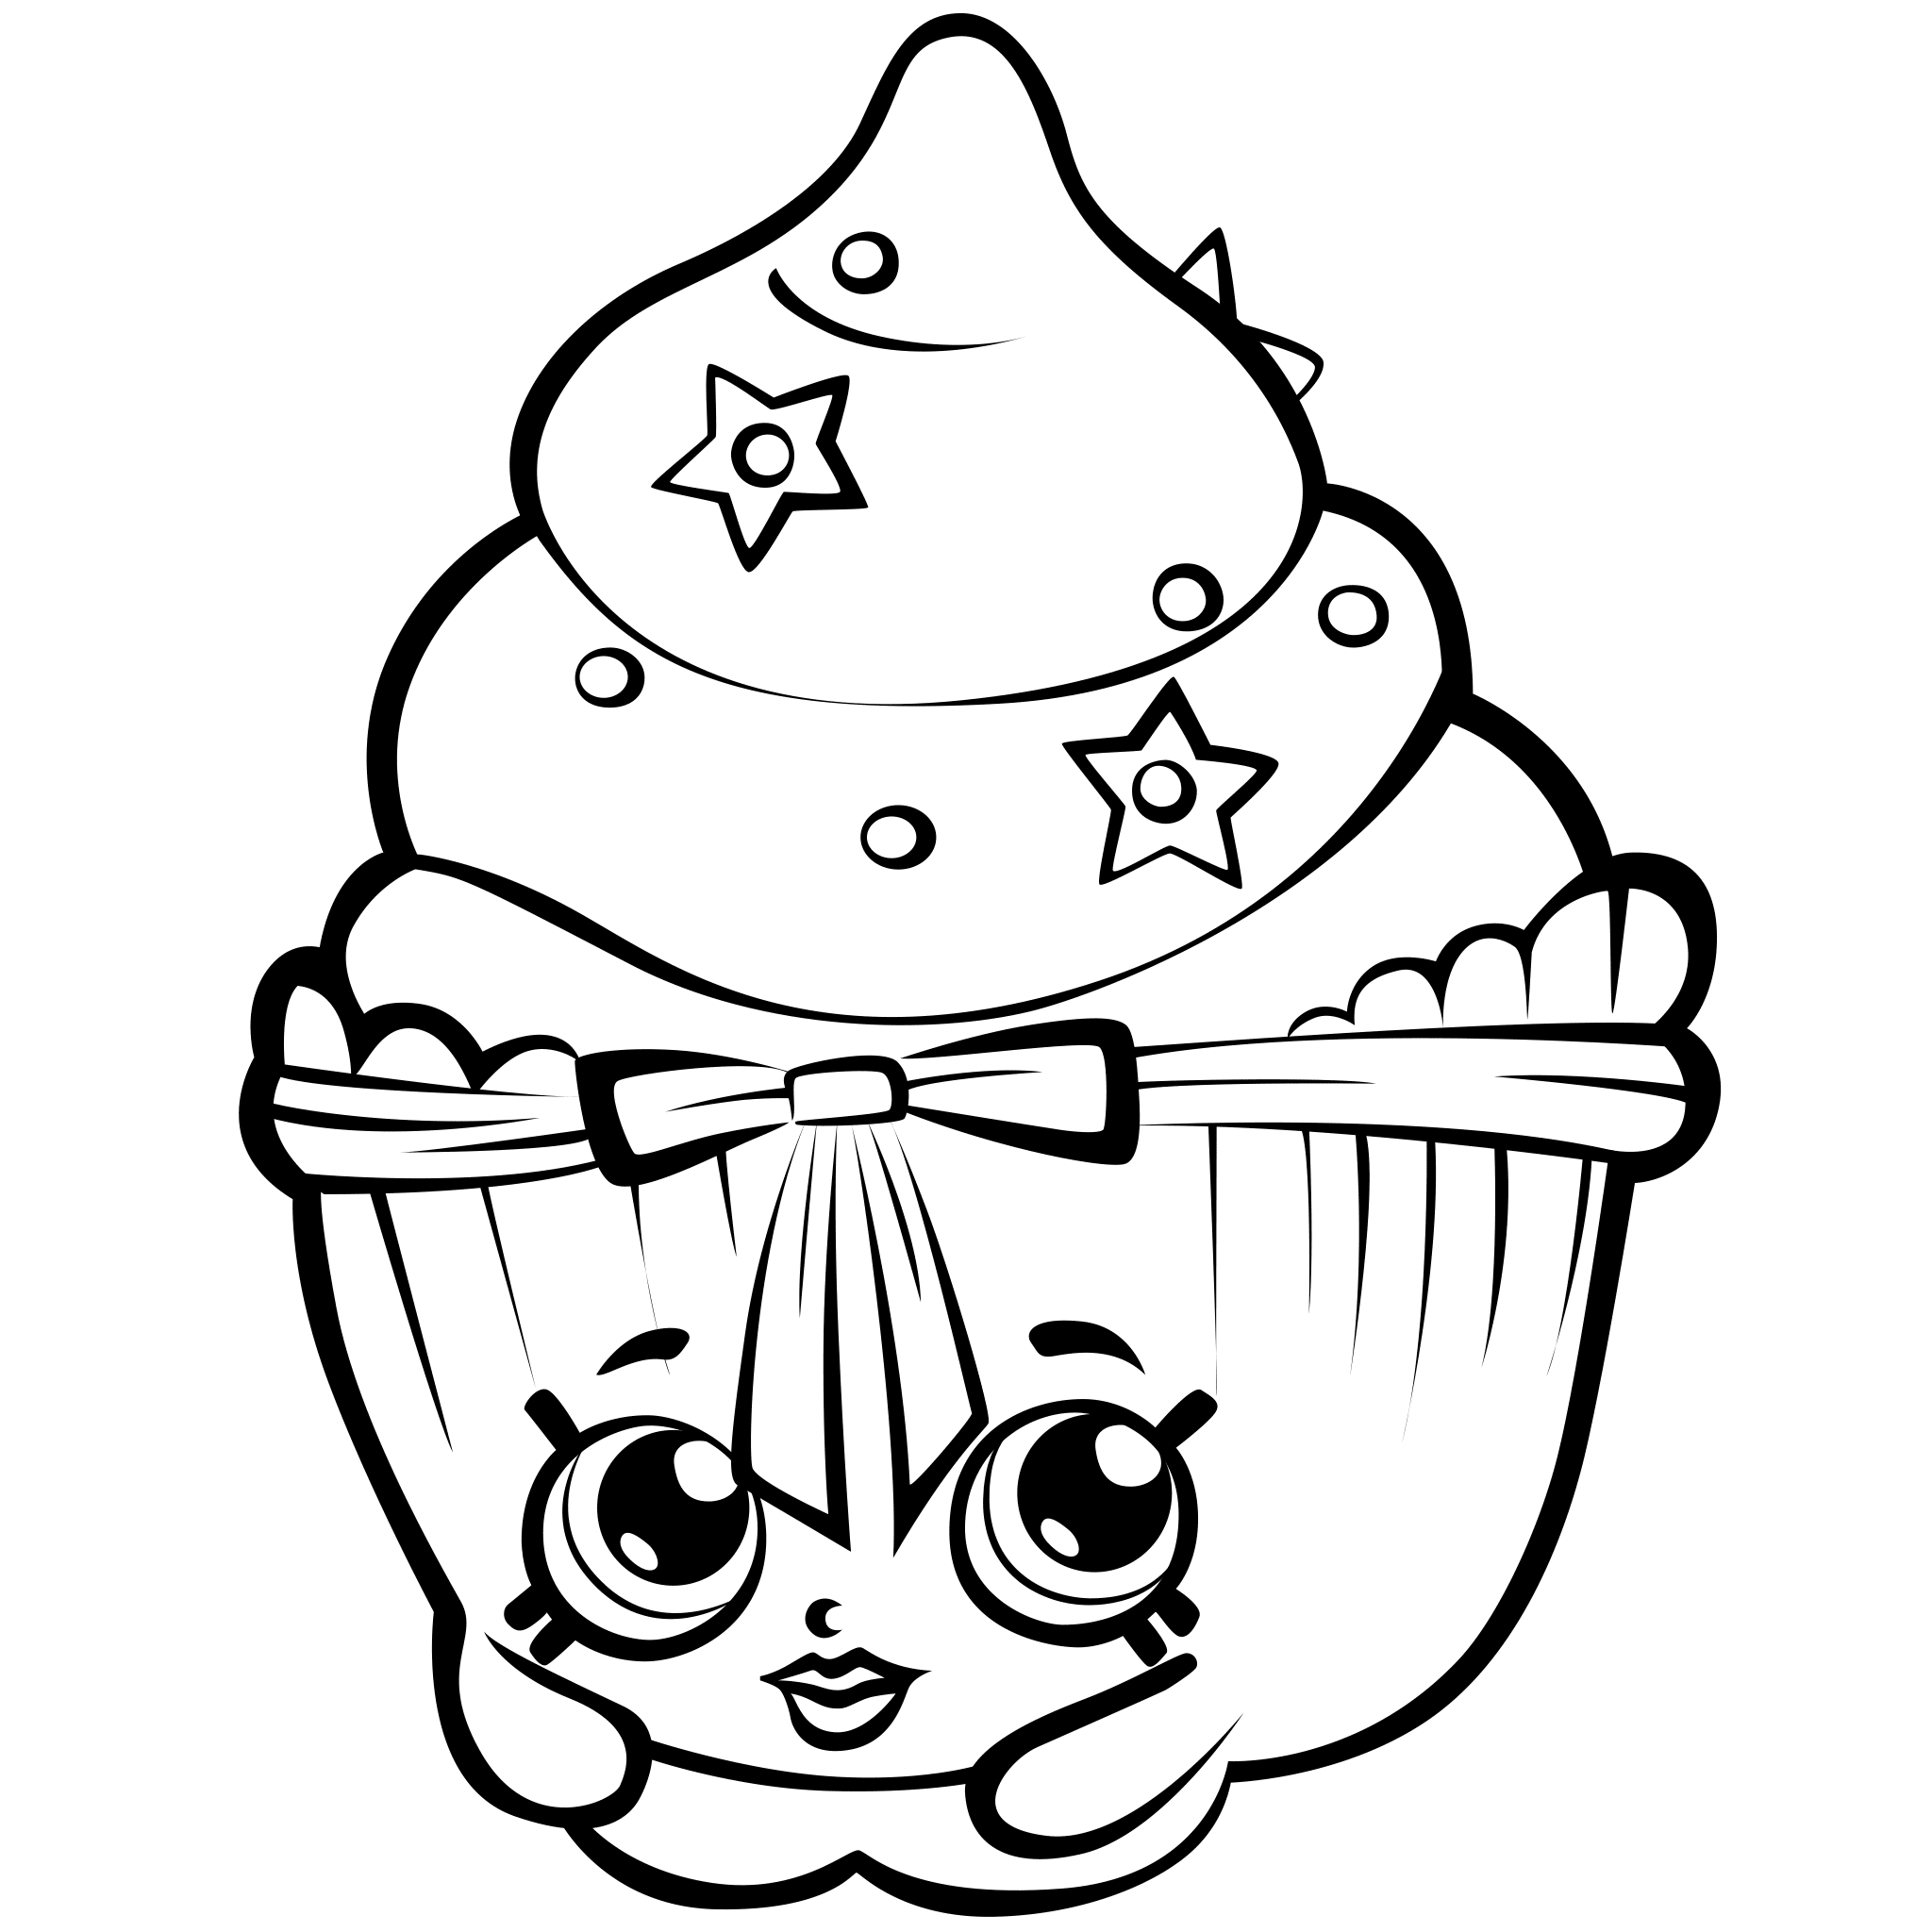 Shopkins coloring pages season 3 - 16 Unique And Rare Shopkins Coloring Pages Of 2017